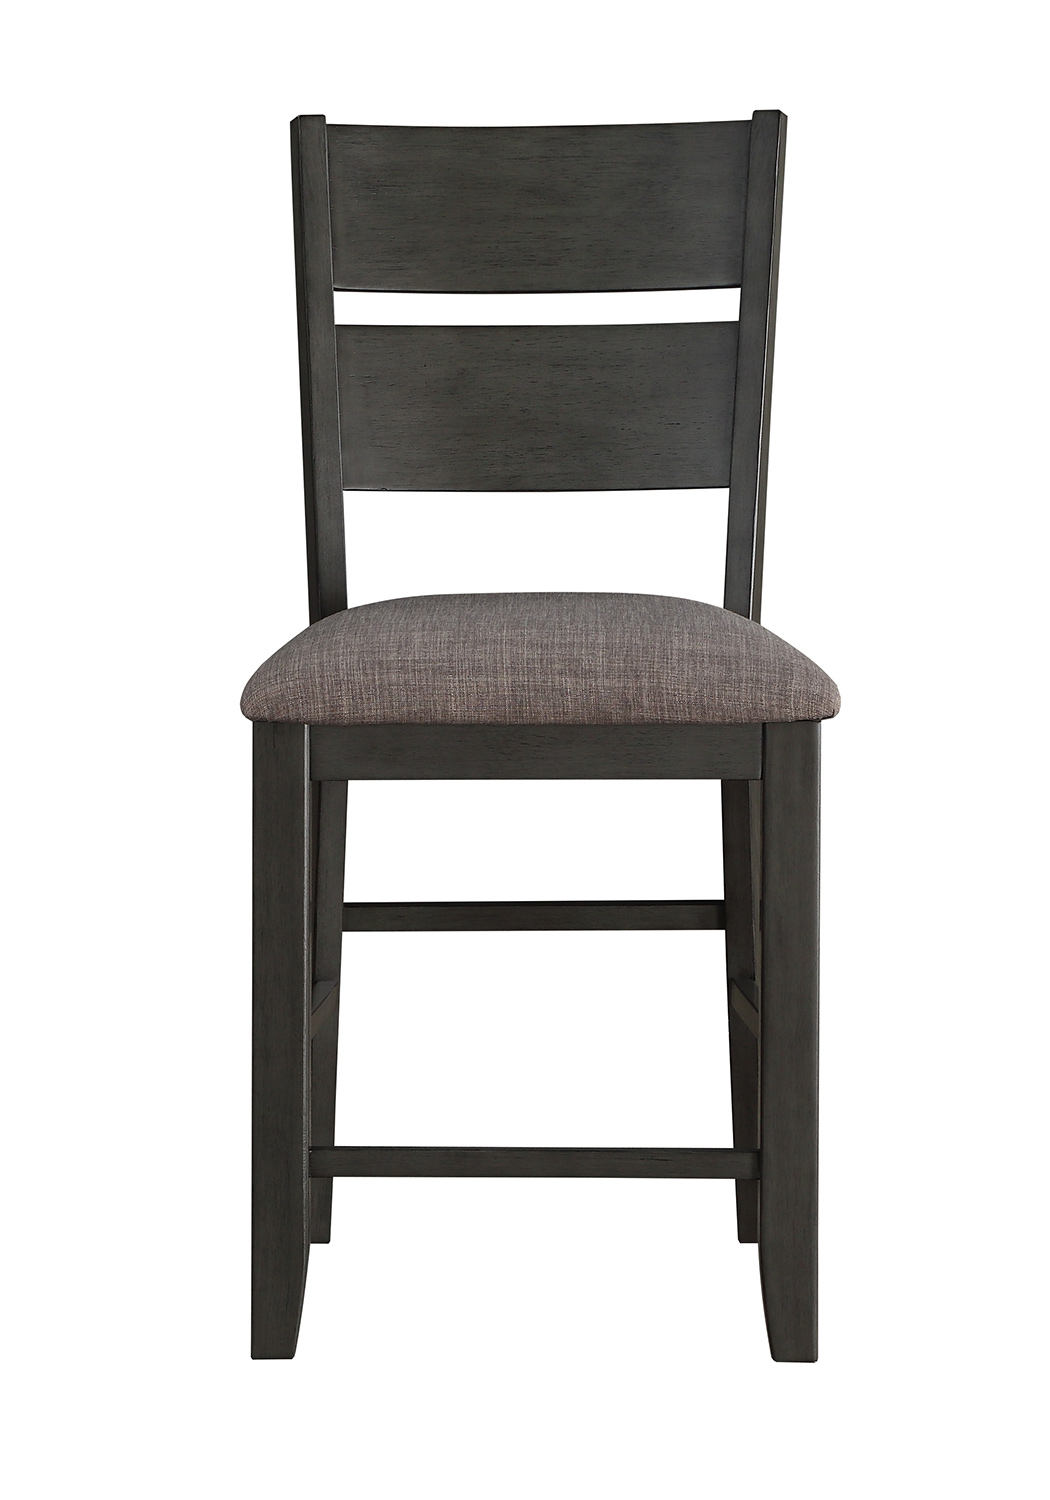 Homelegance Baresford Counter Height Chair - Gray